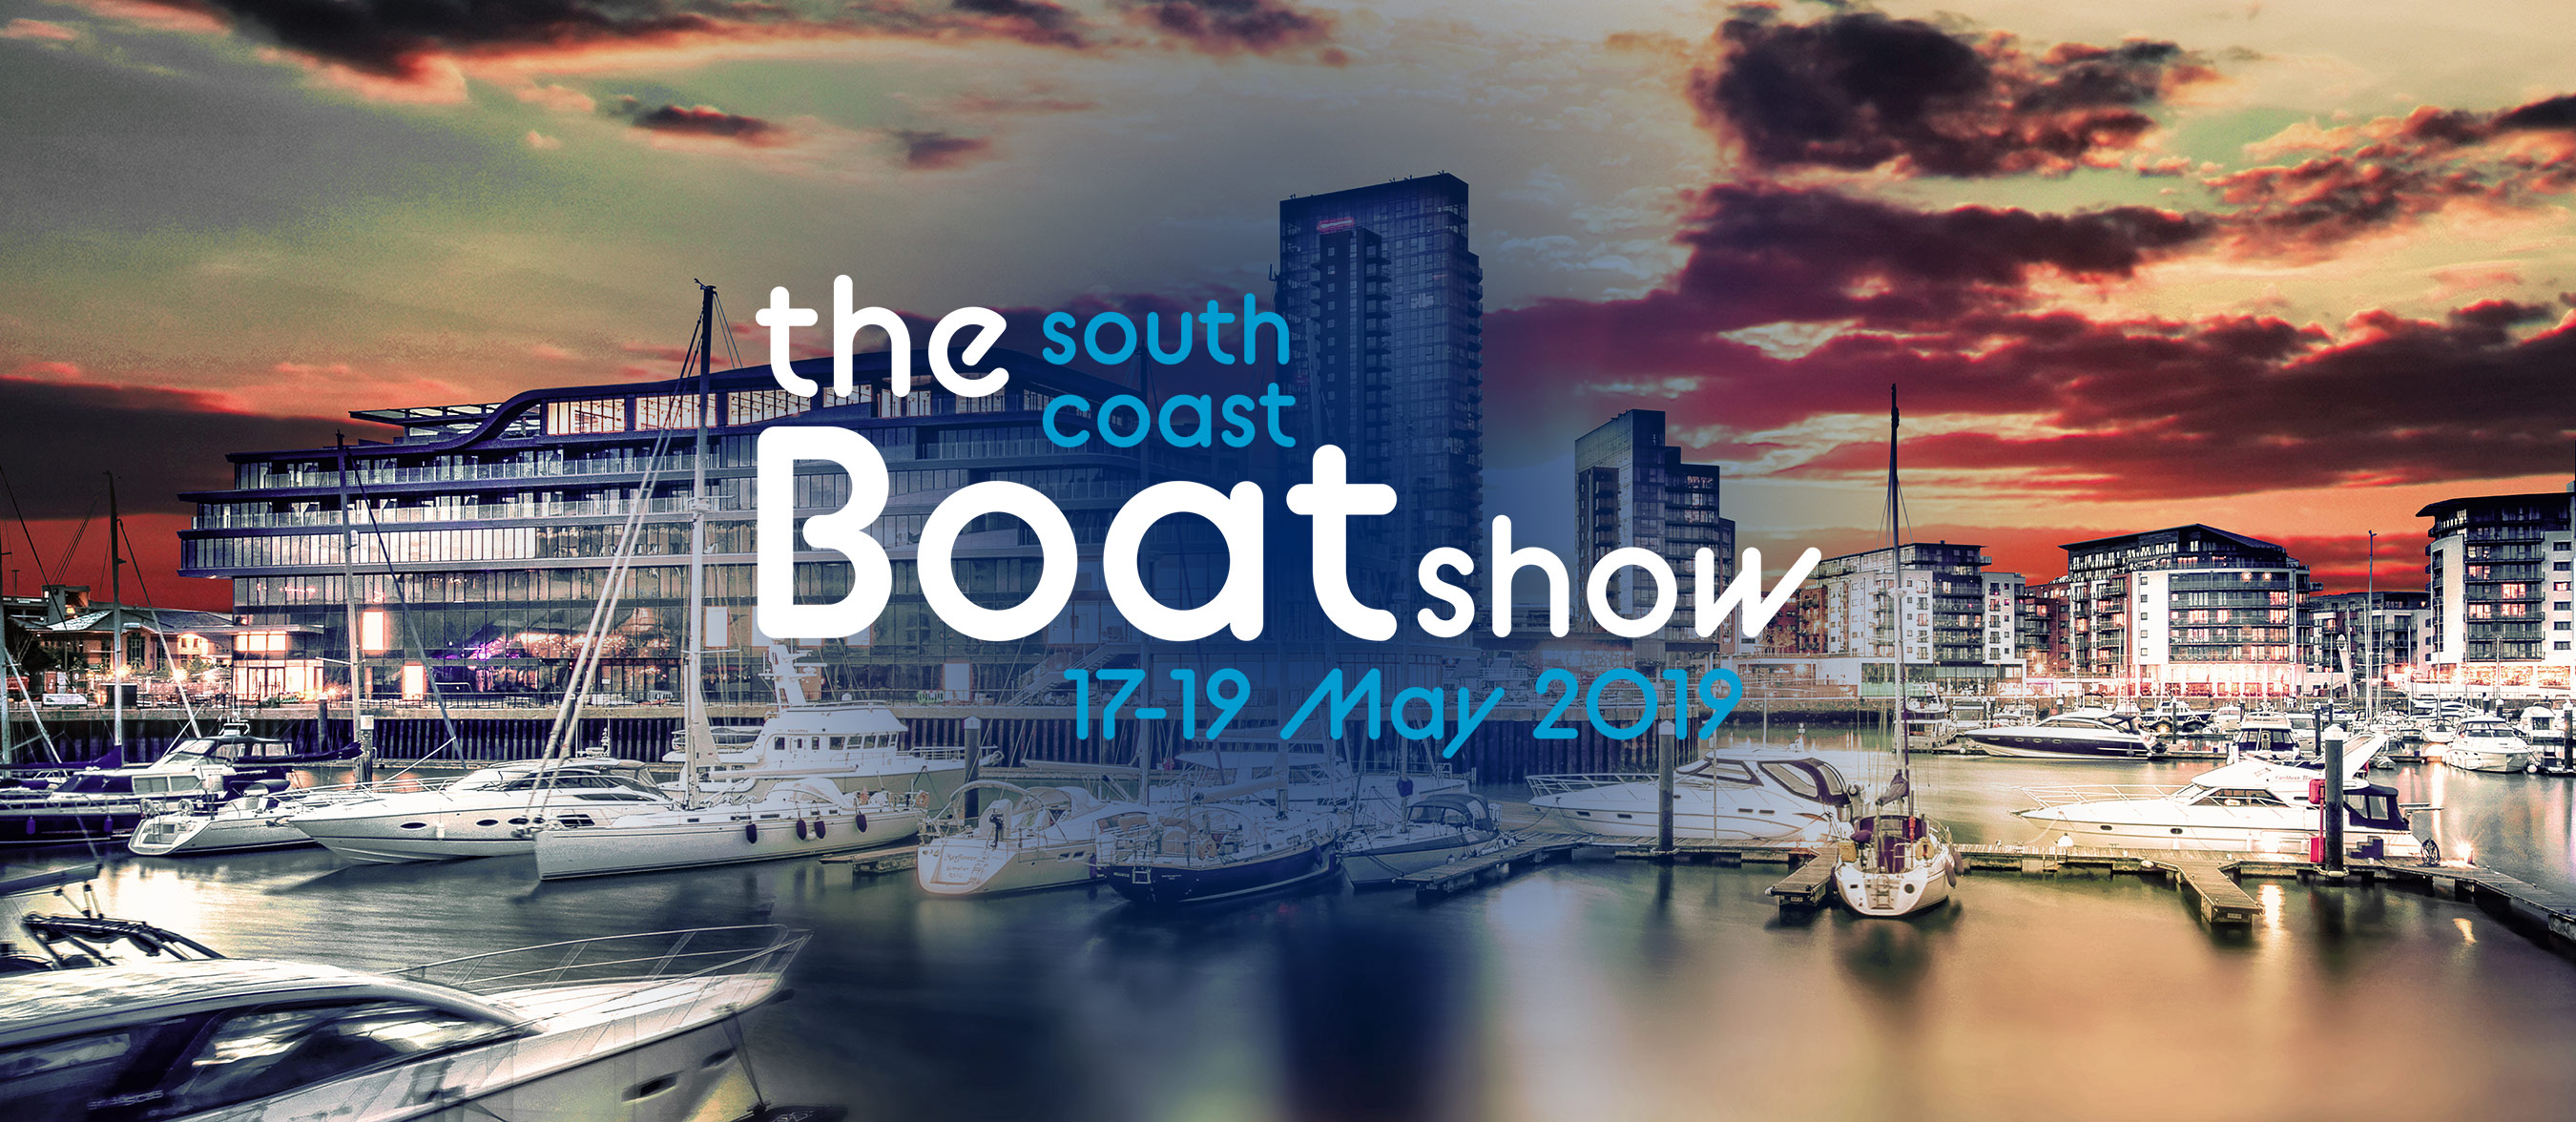 Galeon at the South Coast Boat Show